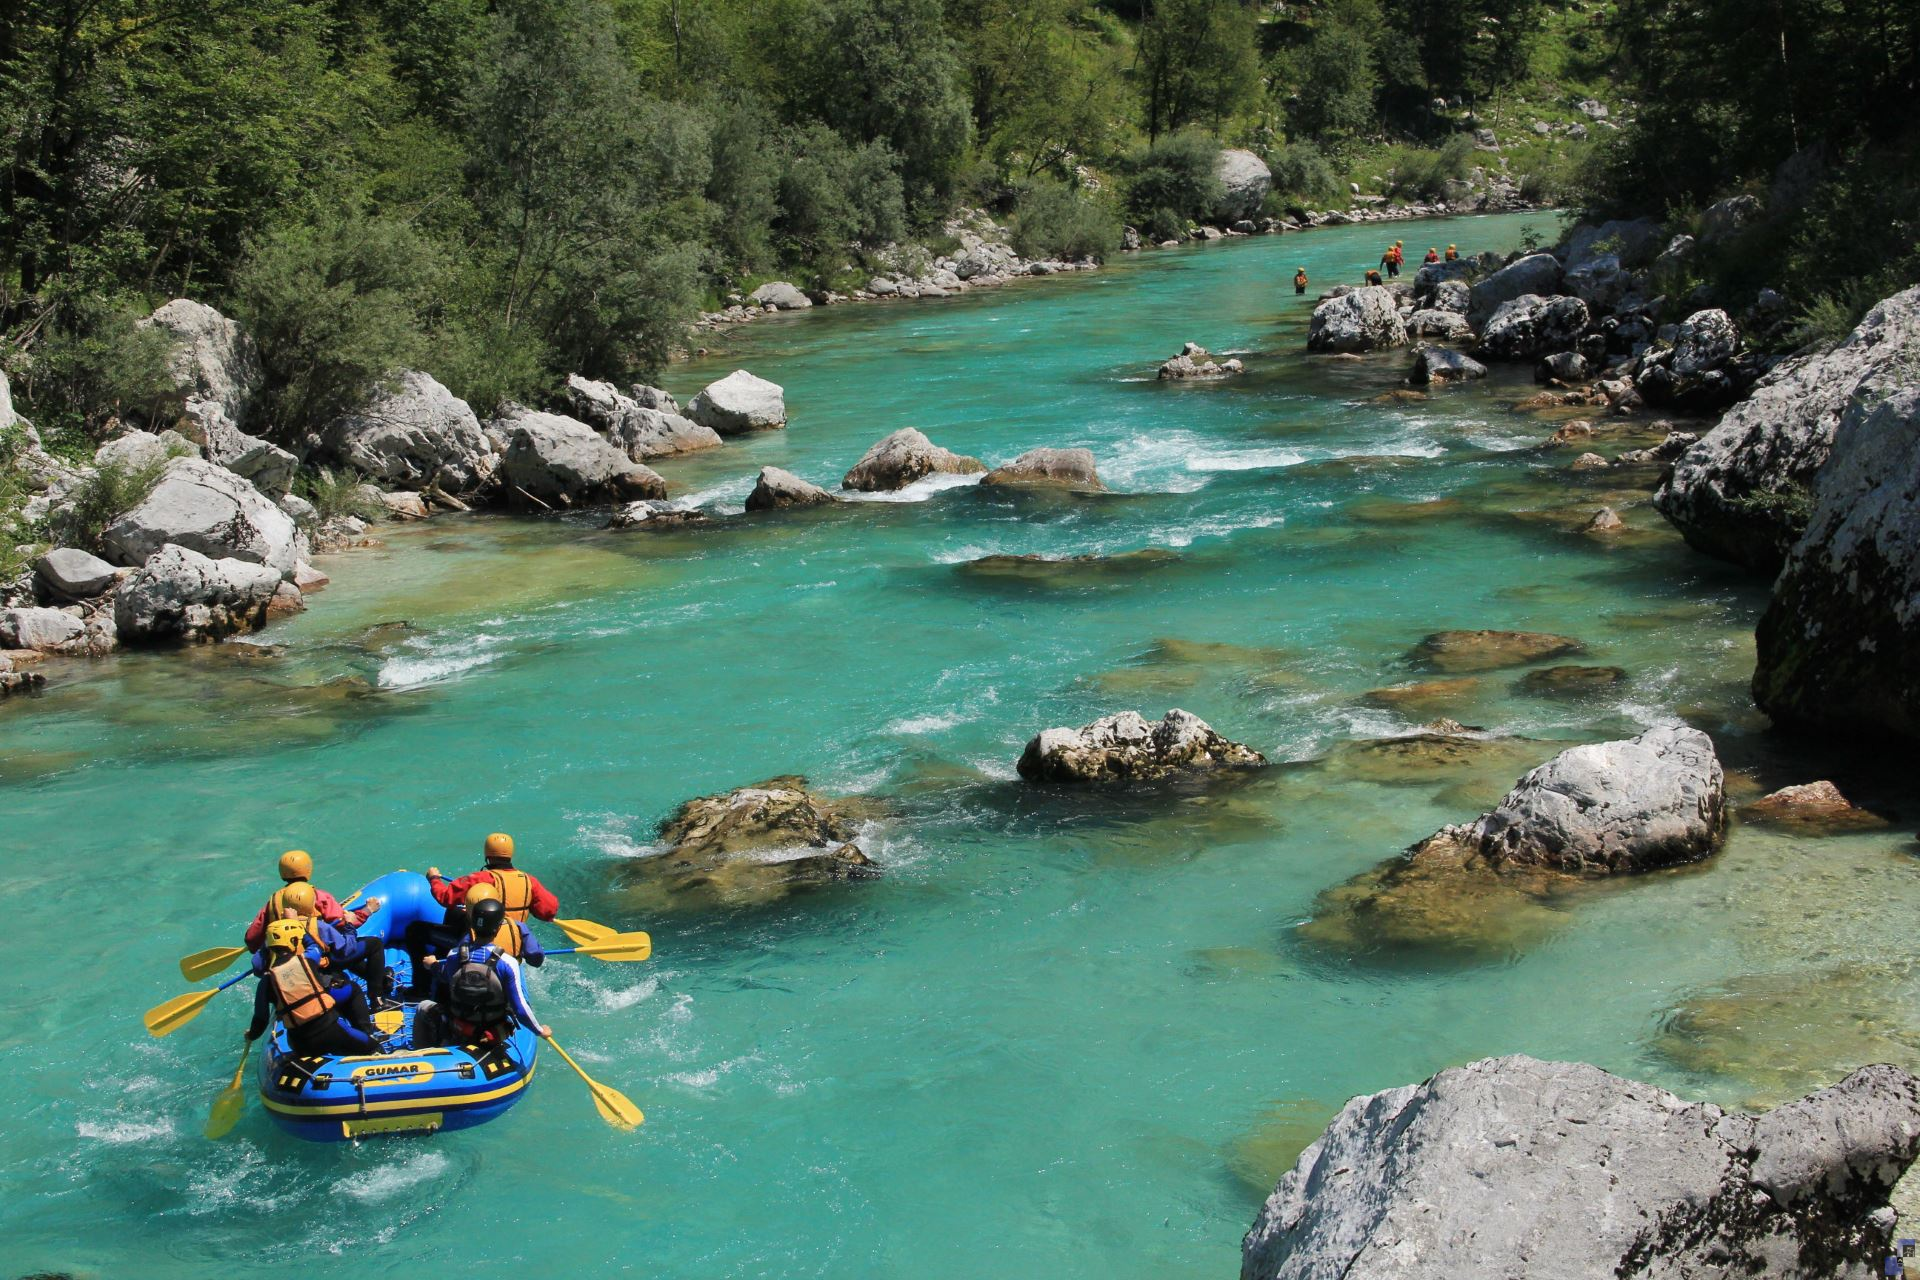 SOCA RIVER VALLEY NATURE ADVENTURE TOUR WITH RAFTING